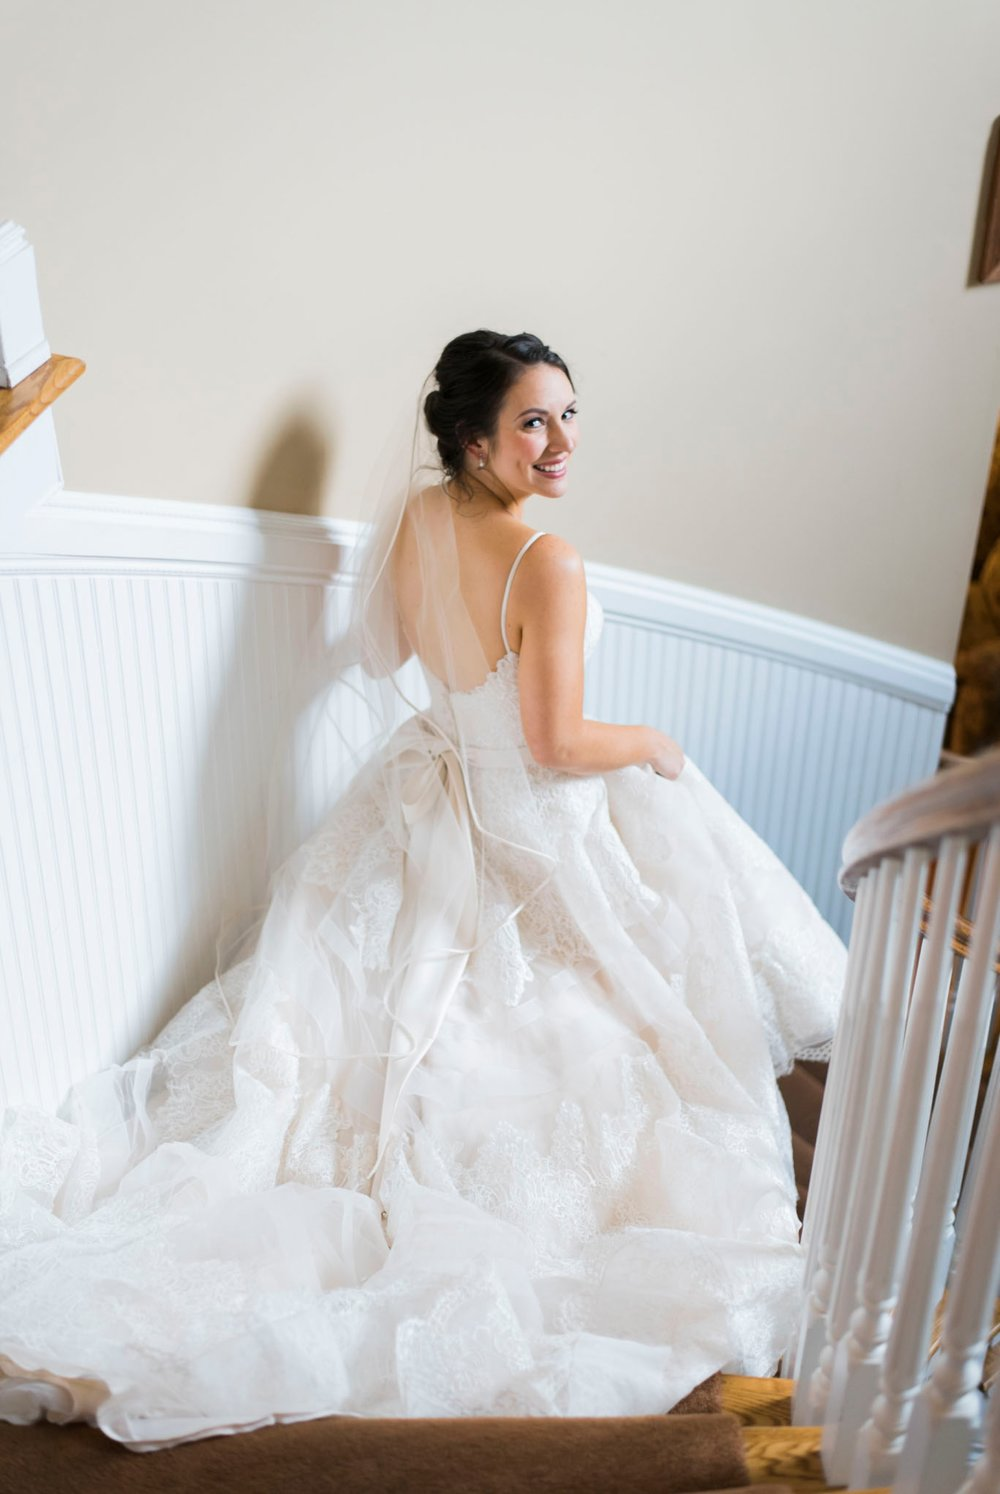 IrvineEstate_LexingtonVA_Wedding_FallWedding_VirginiaWeddingPhotographer 35.jpg